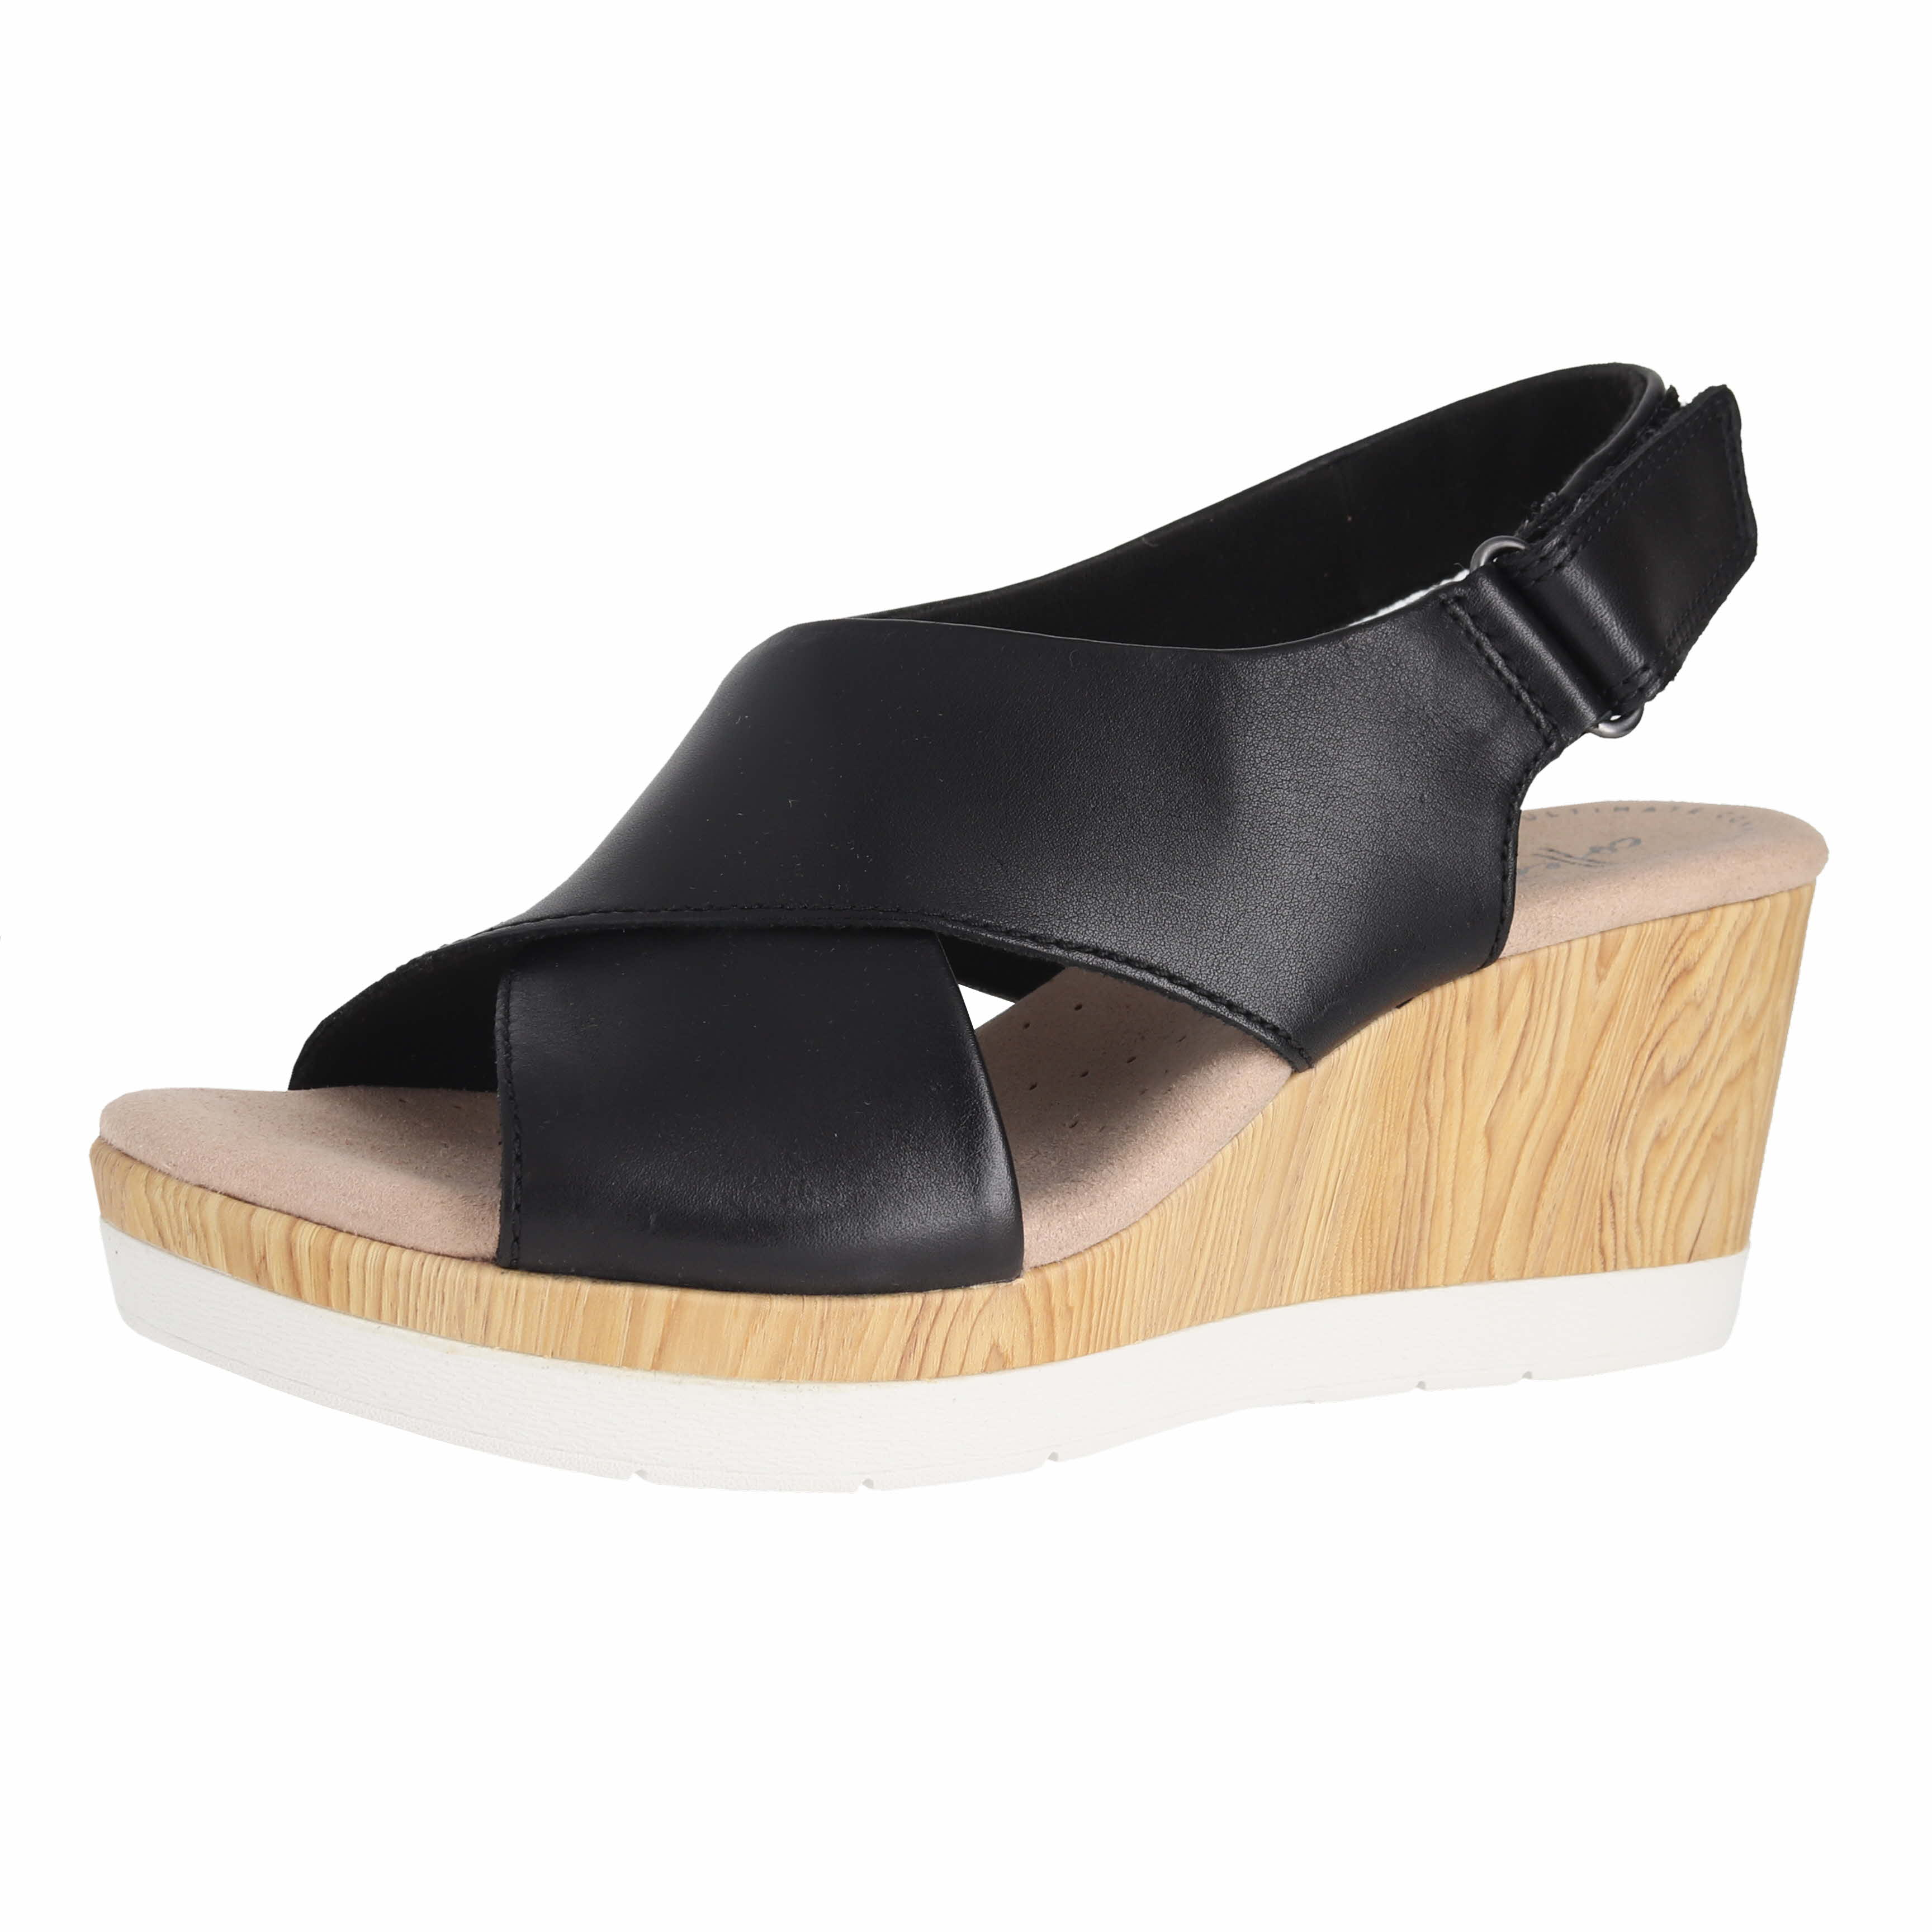 2695ed5bd Details about Clarks Cammy Pearl Black Leather Womens Wedge Sandals Size 12M